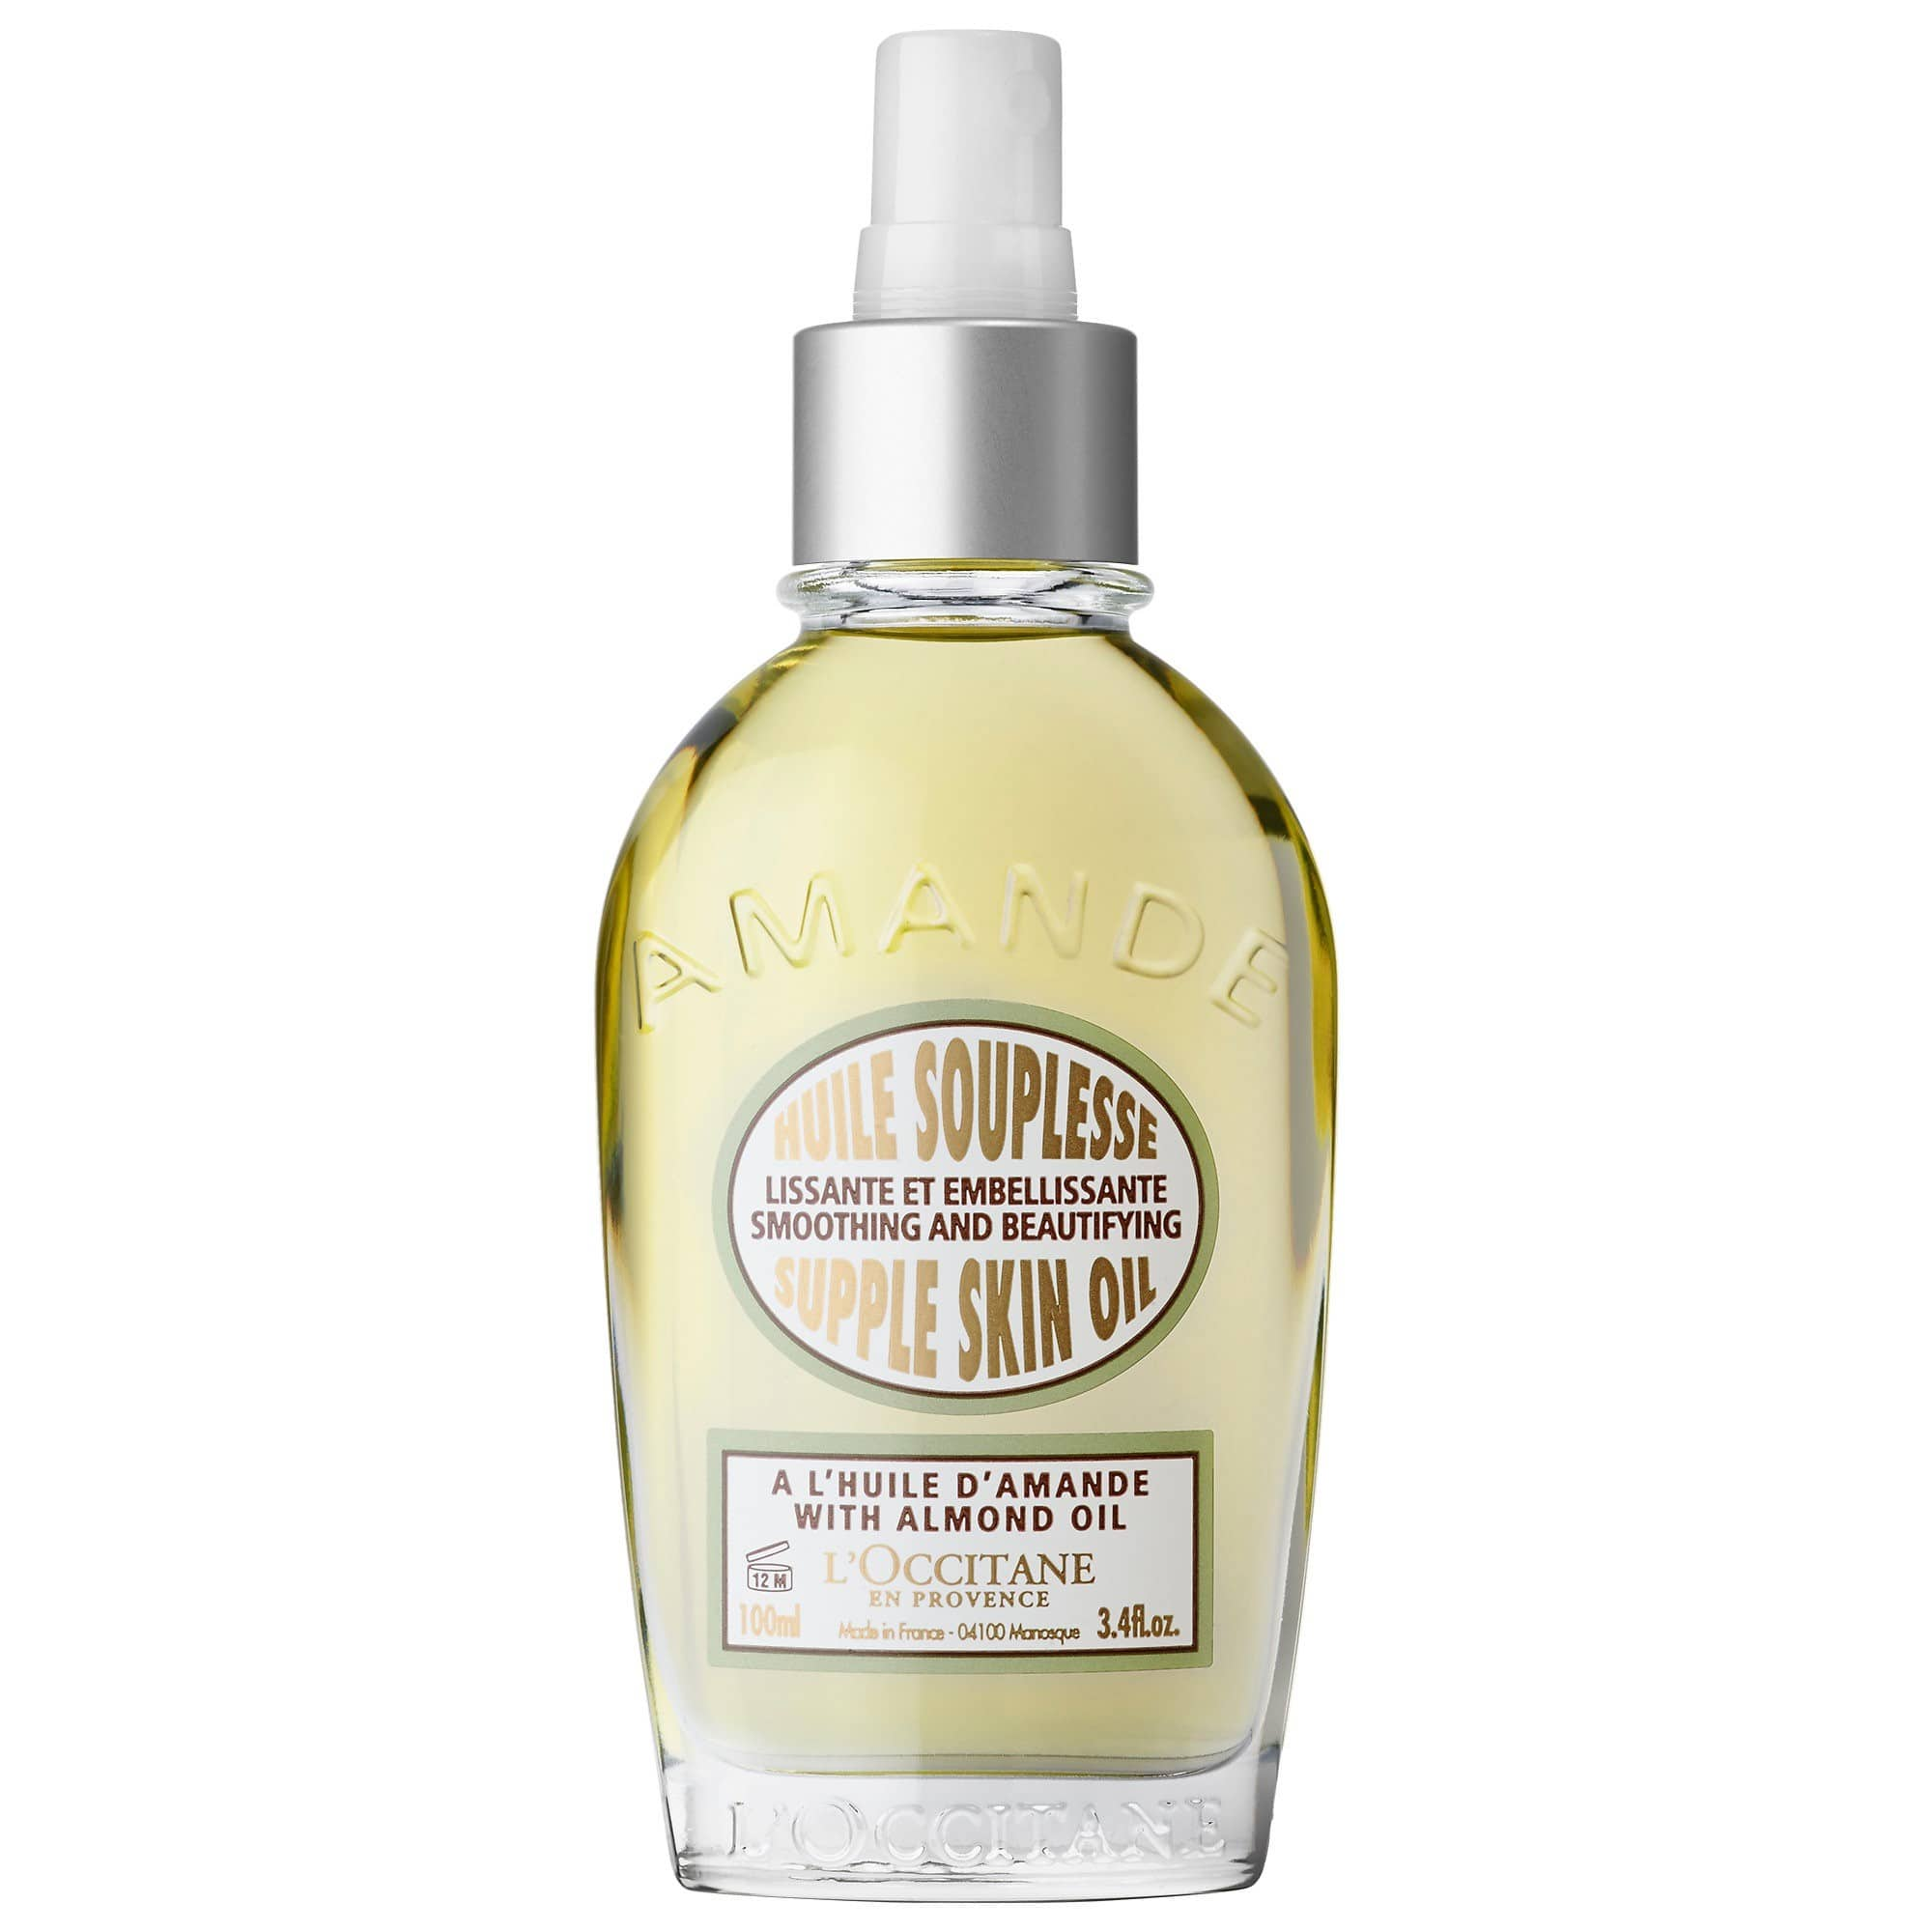 L'Occitane's Almond Supple Skin Body Oil